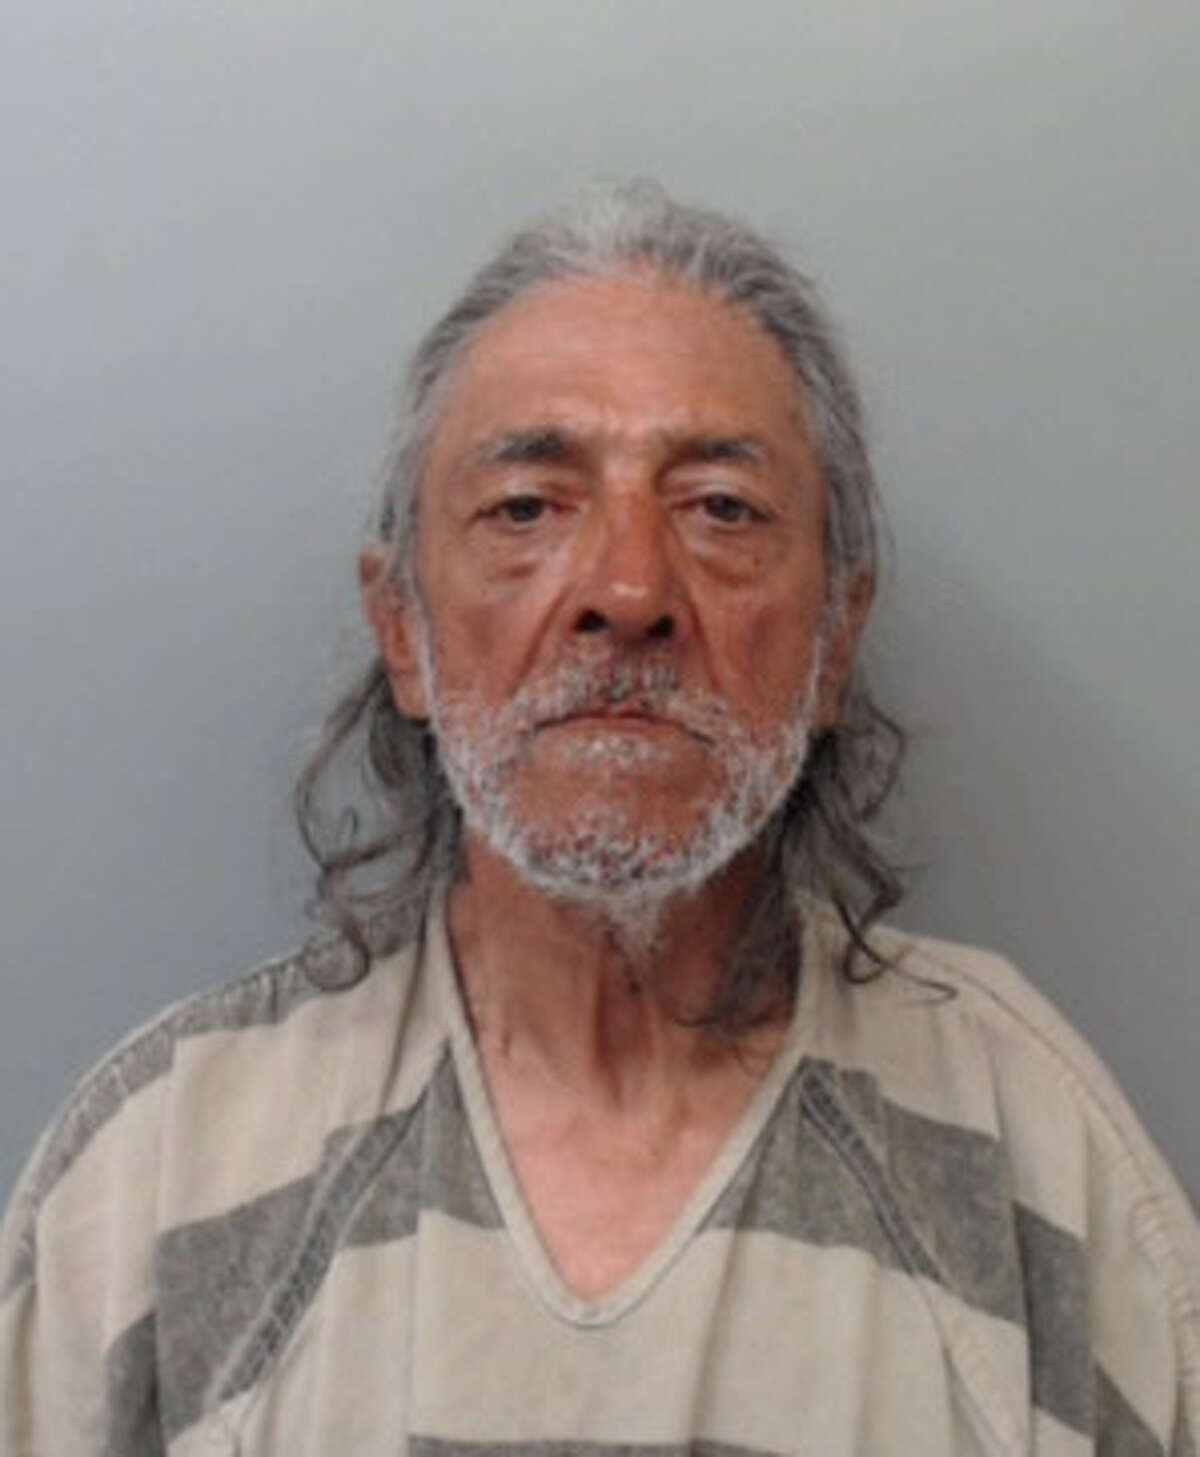 Francisco Aranda, 68, was charged with aggravated assault with a deadly weapon.